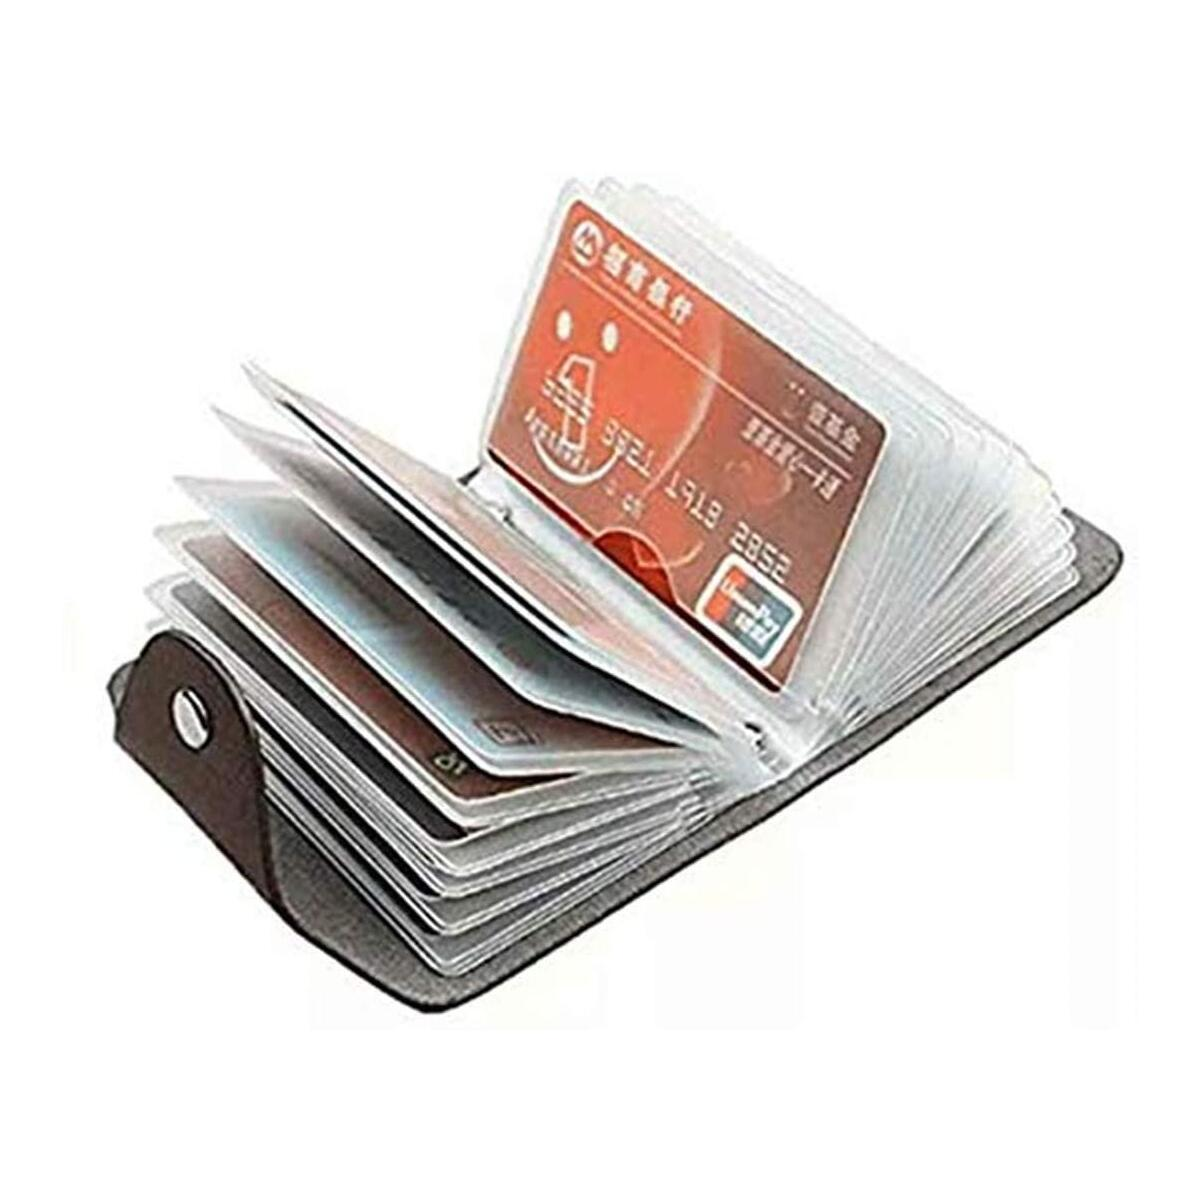 Leather Minimalism Card Holder Small Credit Card Organizer Small Card Holder Card Cases 24 Card Position(Black)